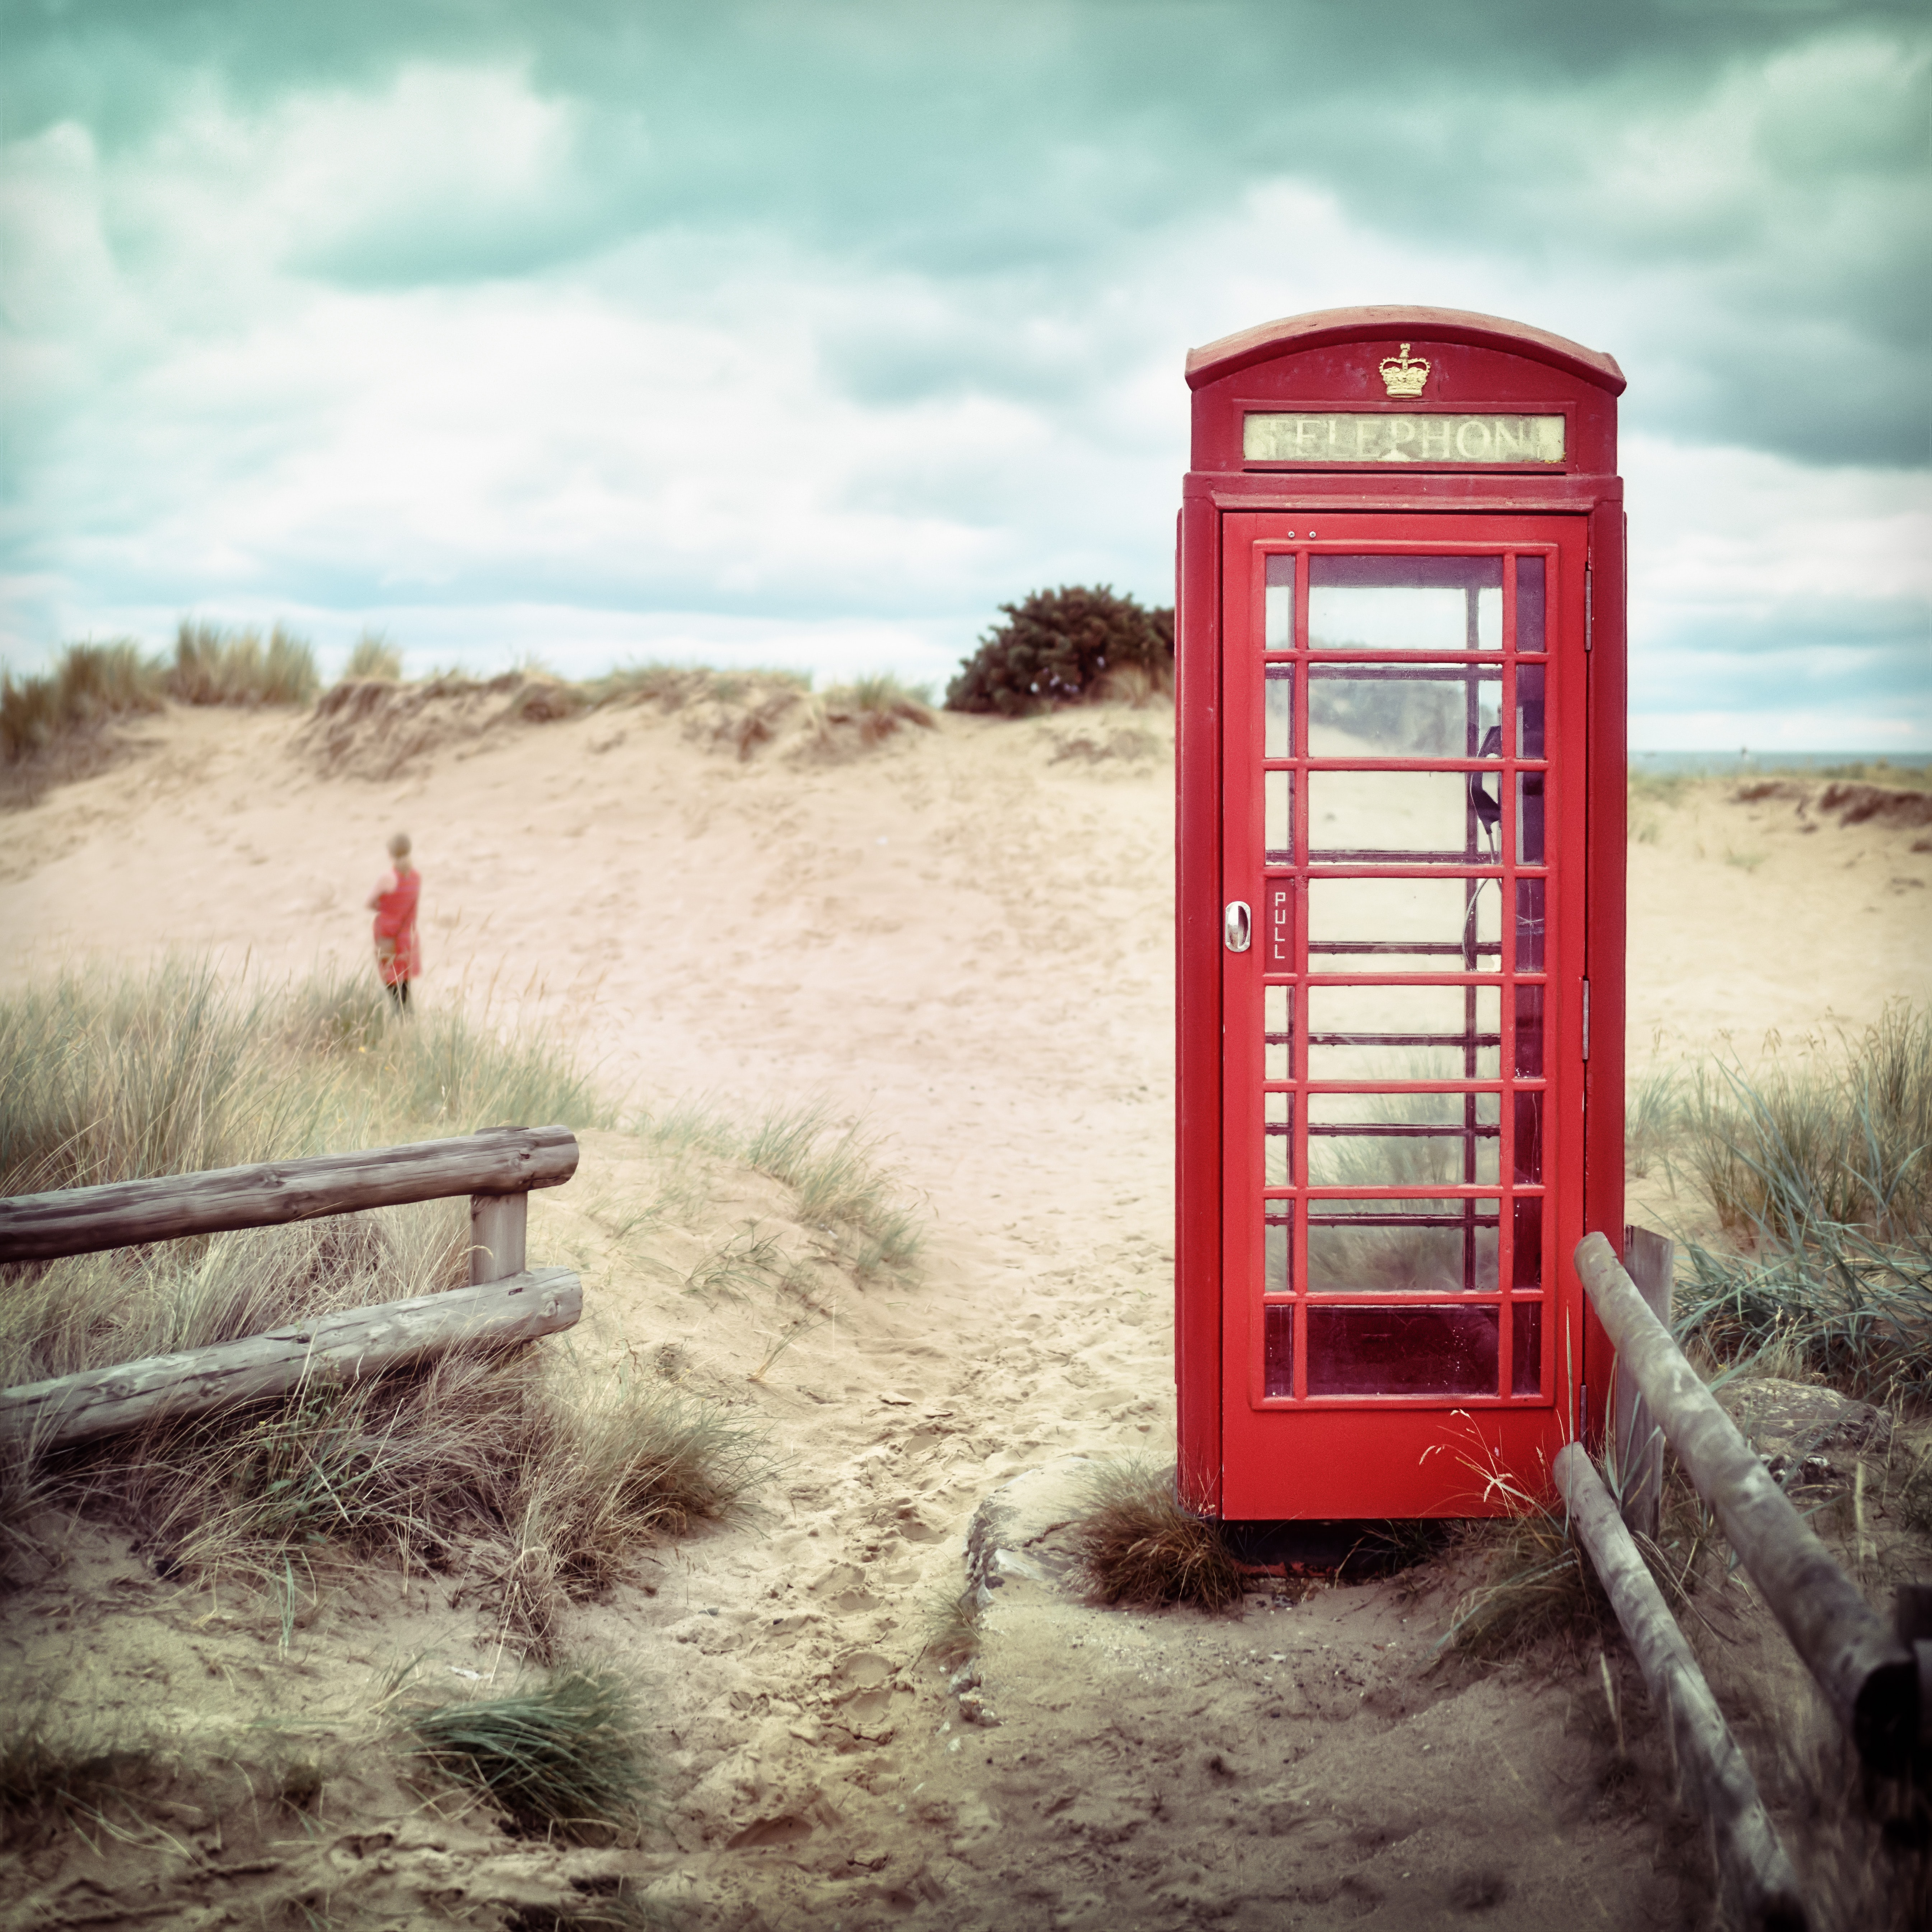 A red telephone booth sitting on a beach.